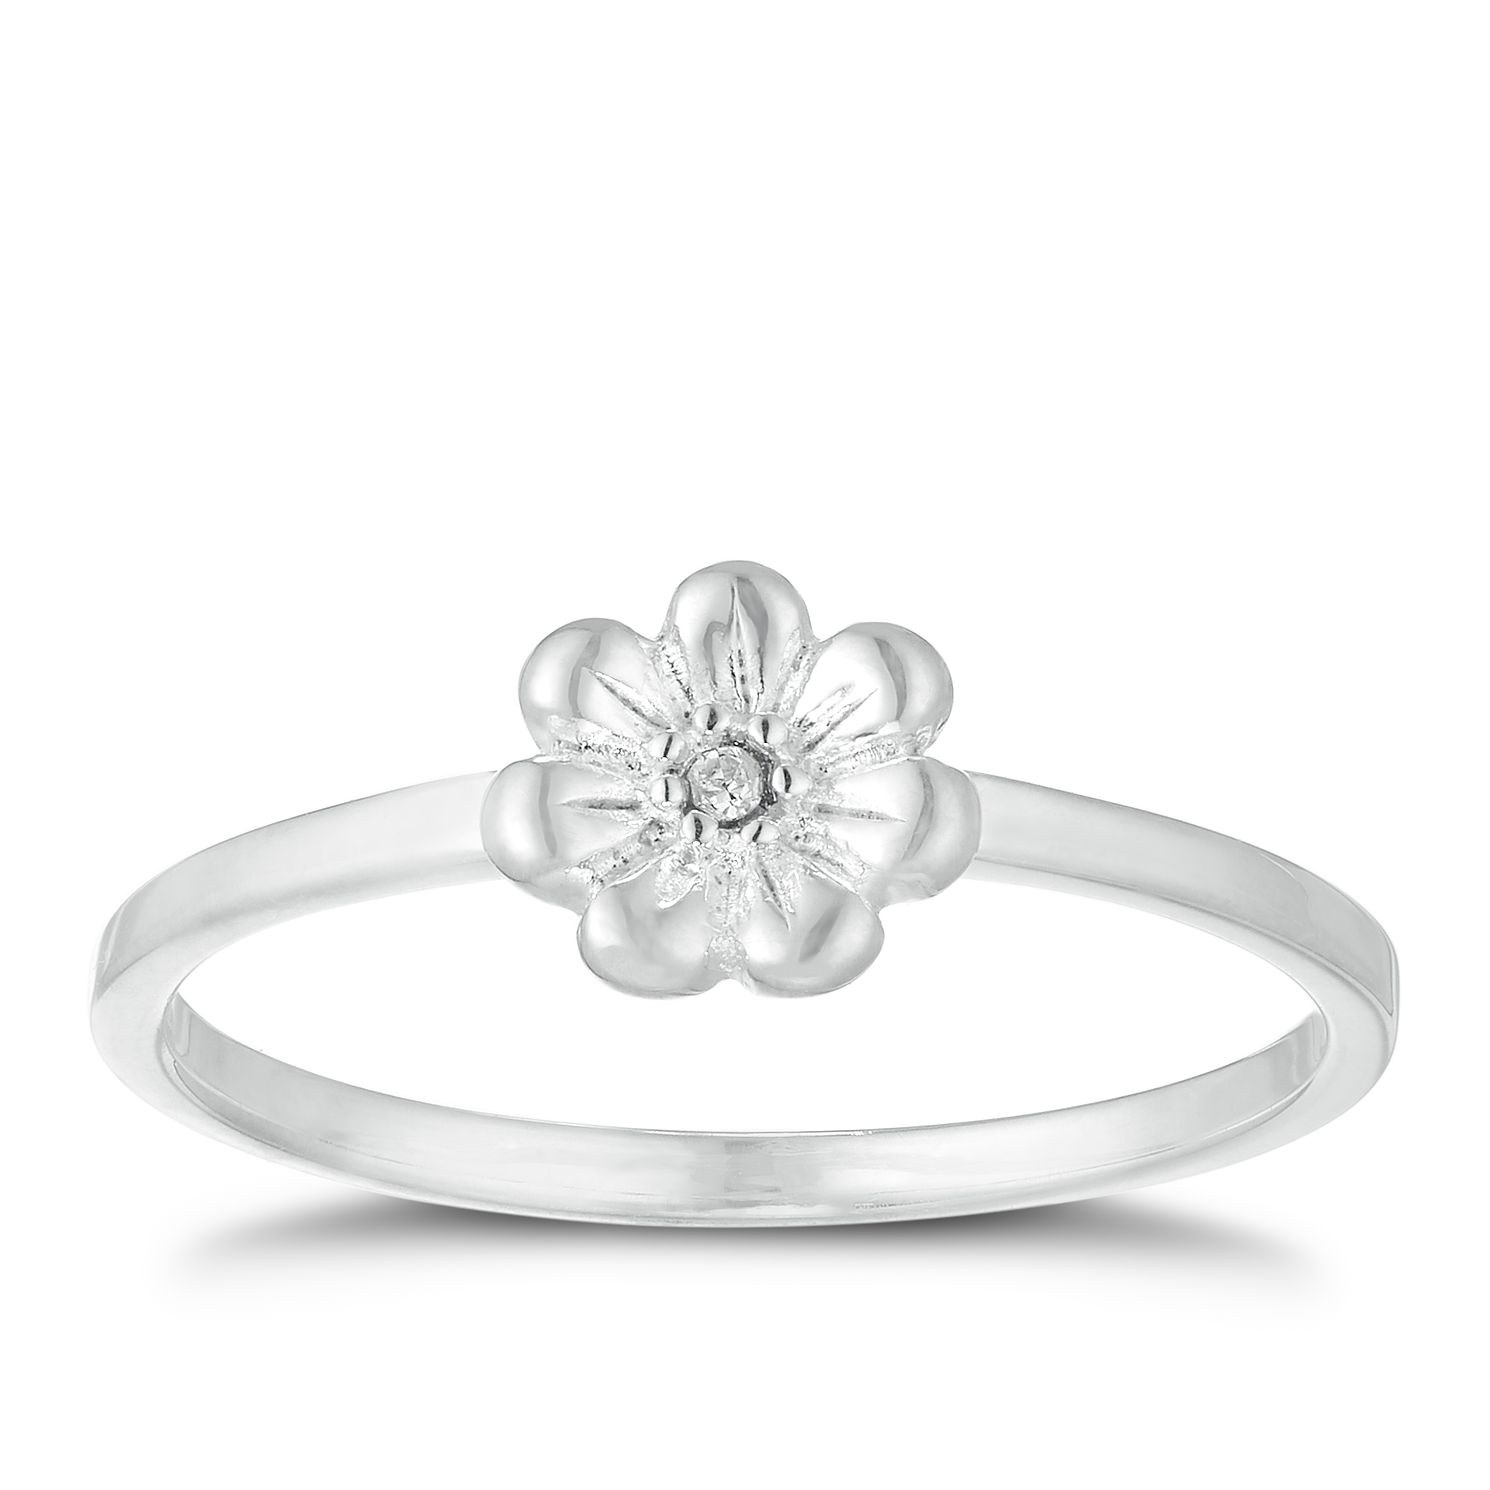 Children's Silver Cubic Zirconia Crystal Flower Ring Size F - Product number 9664599